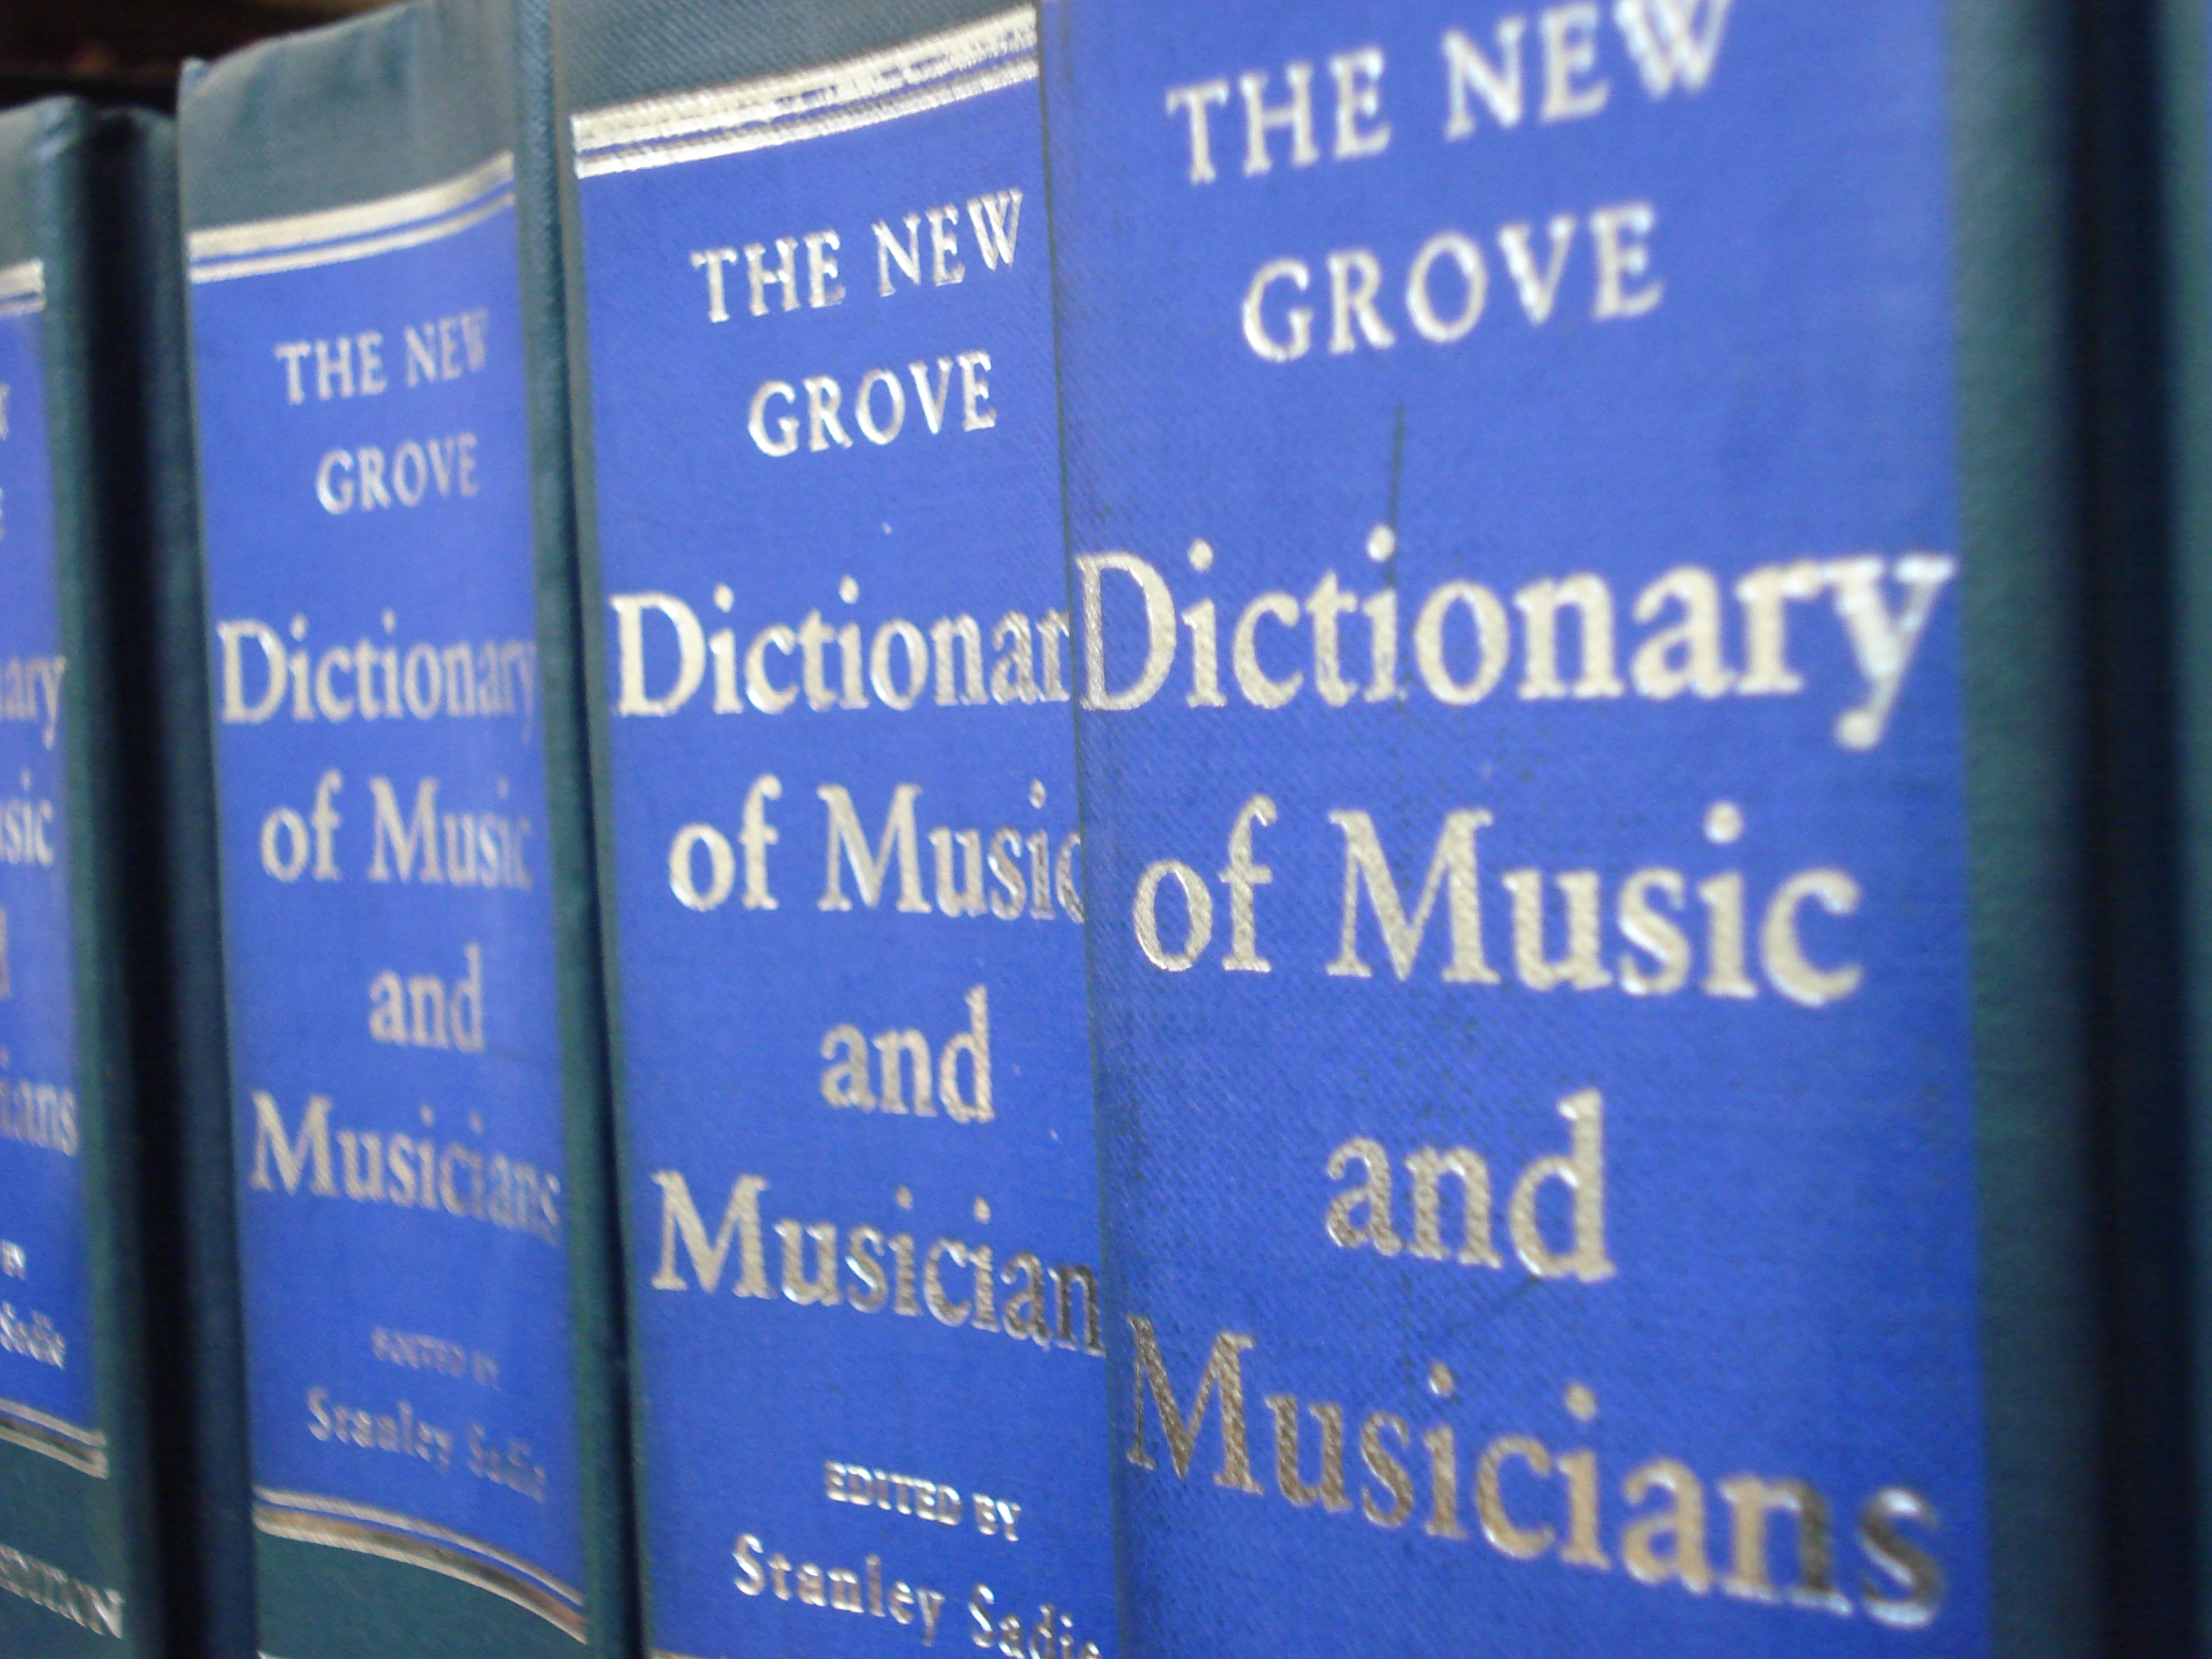 Dictionary of music and musicians : American supplement